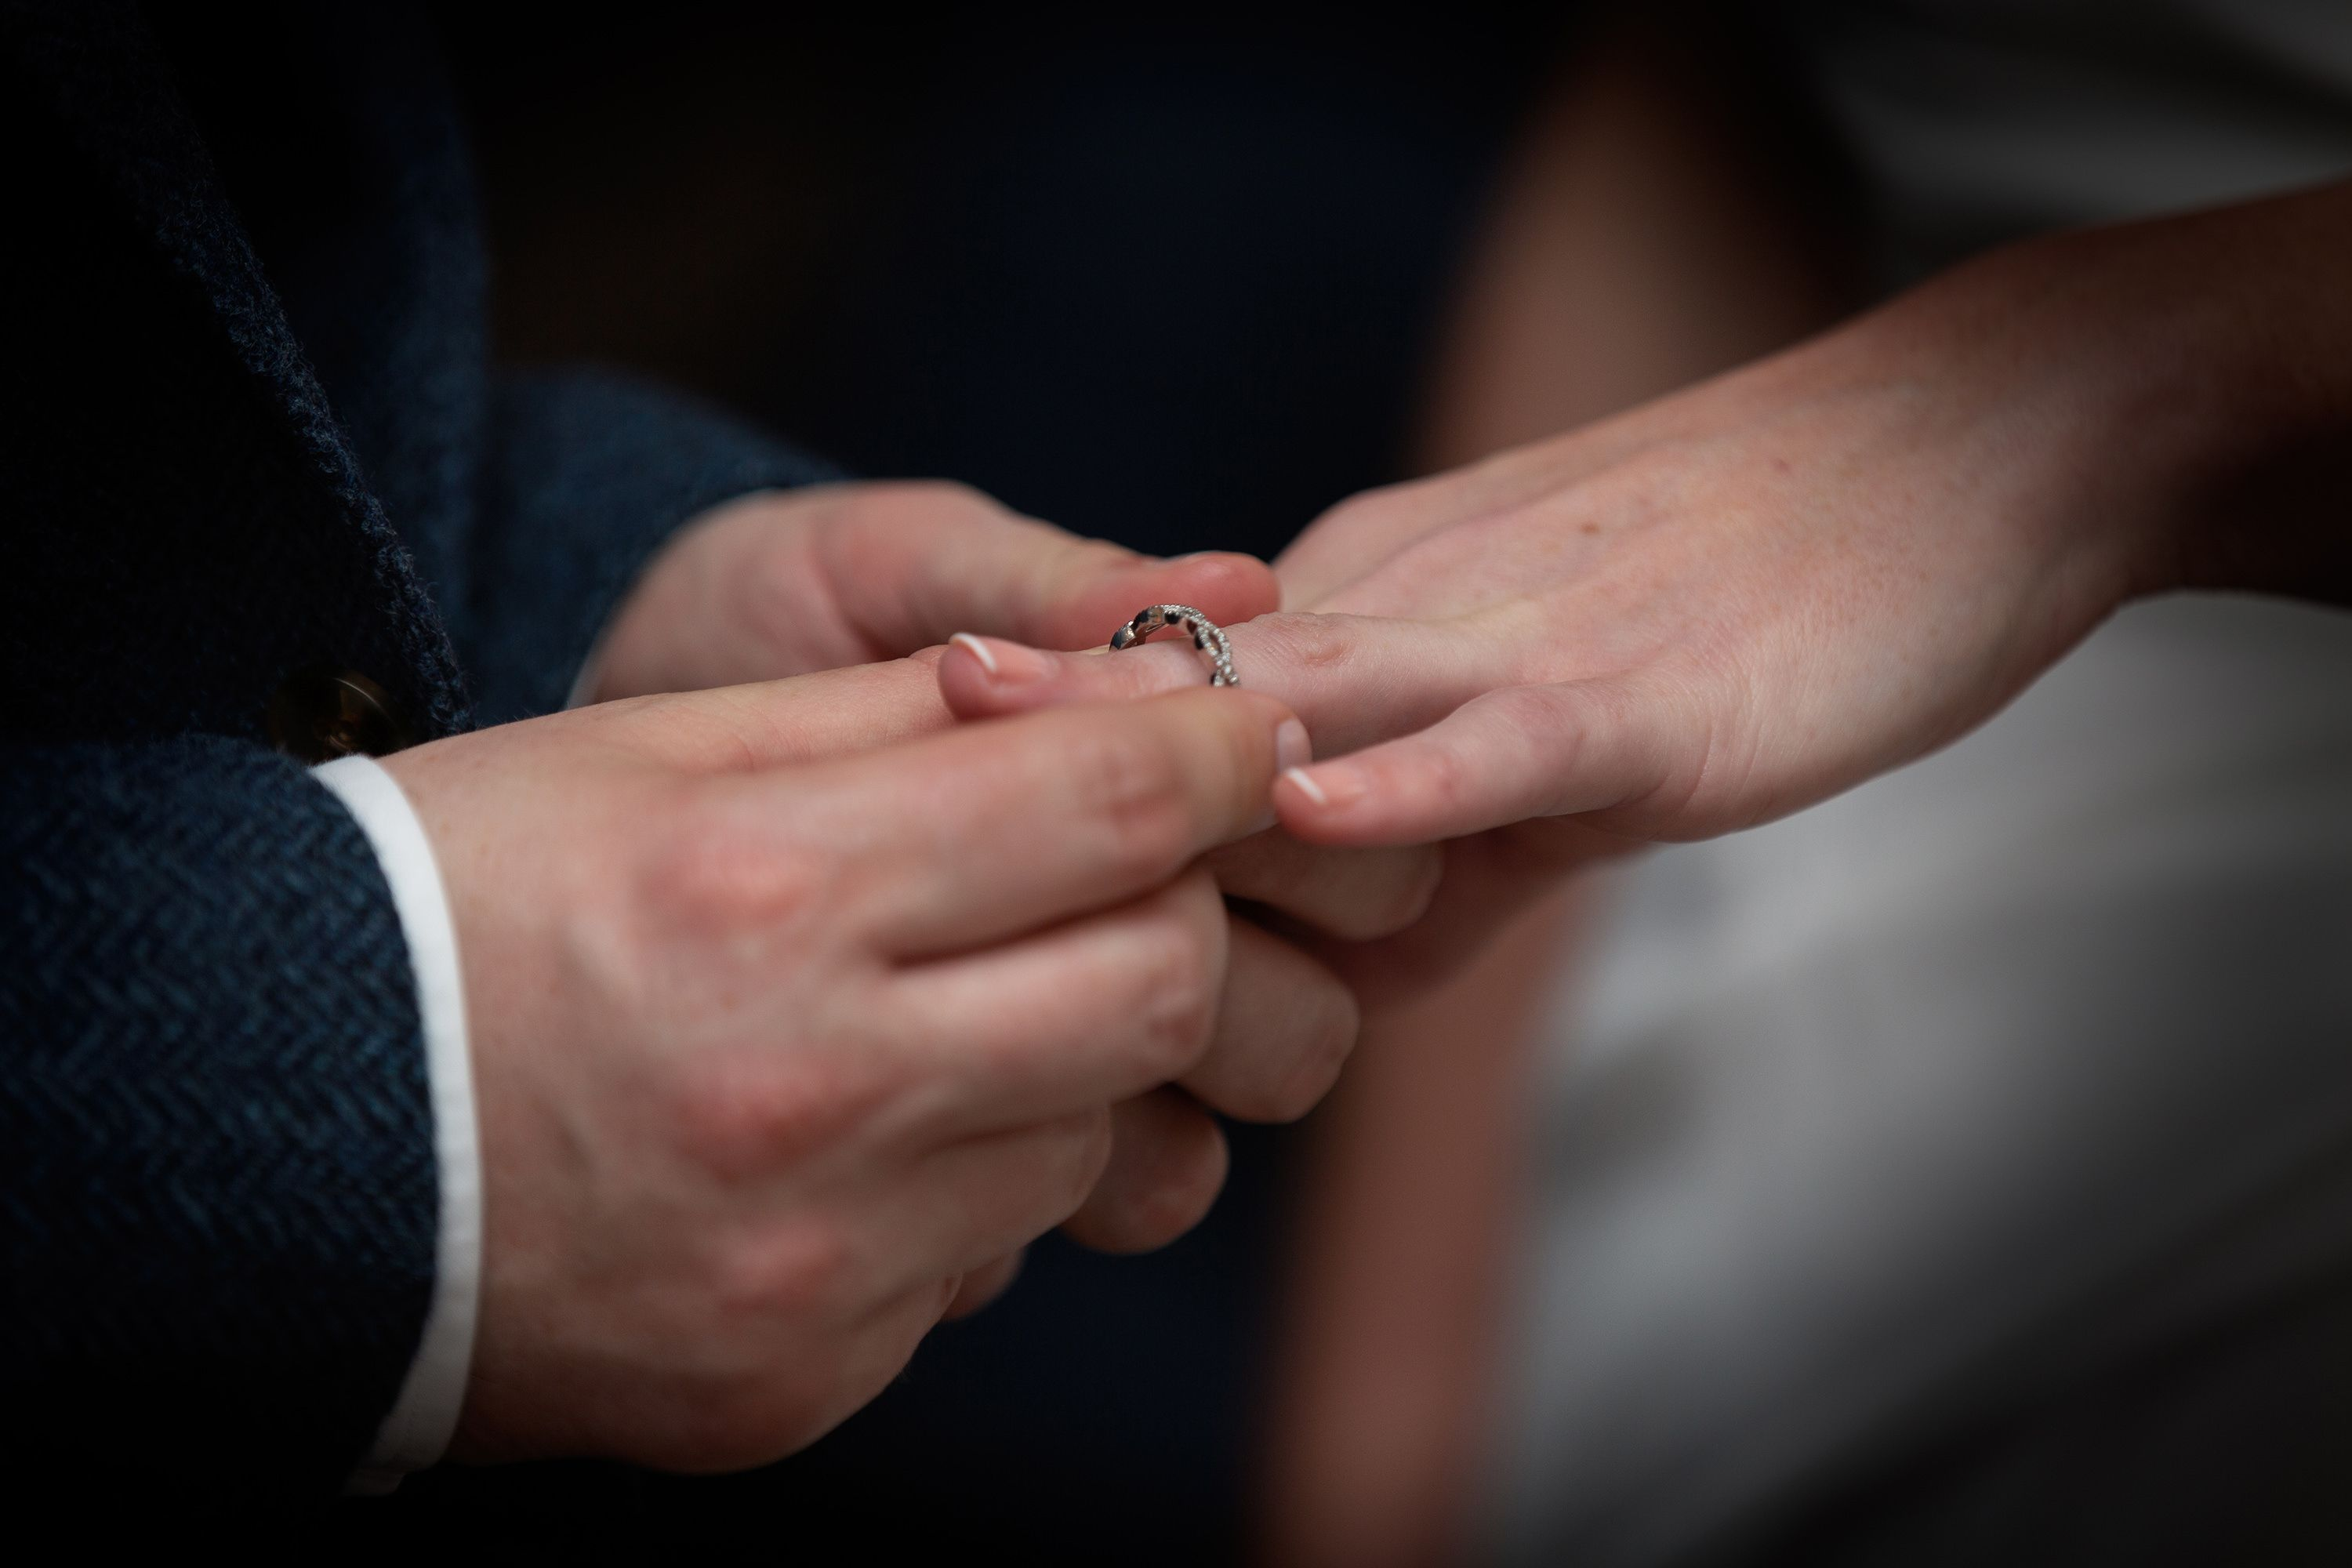 the brides wedding ring being placed on her finger